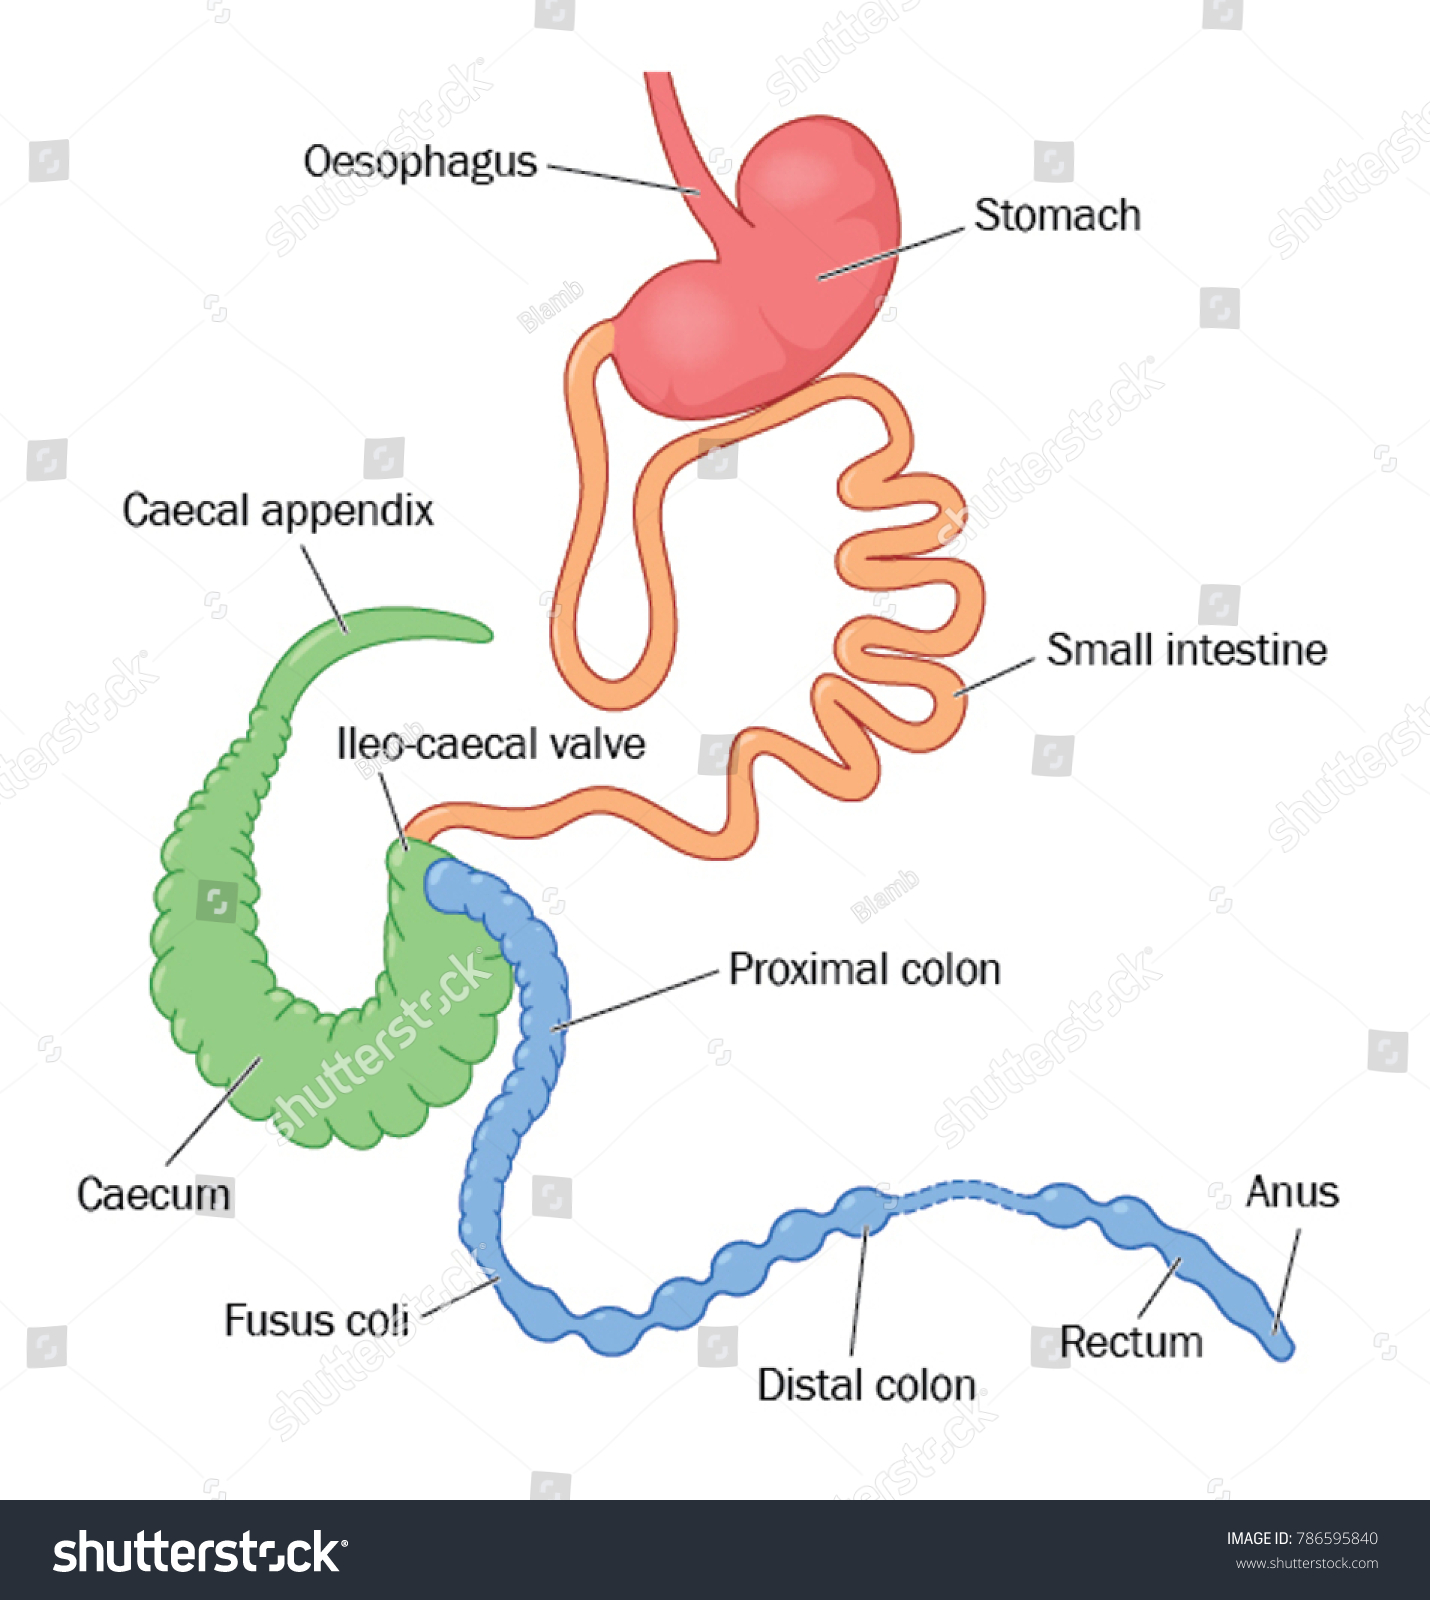 Digestive System Rabbit Showing Enlarged Appendix Stock Vector ...